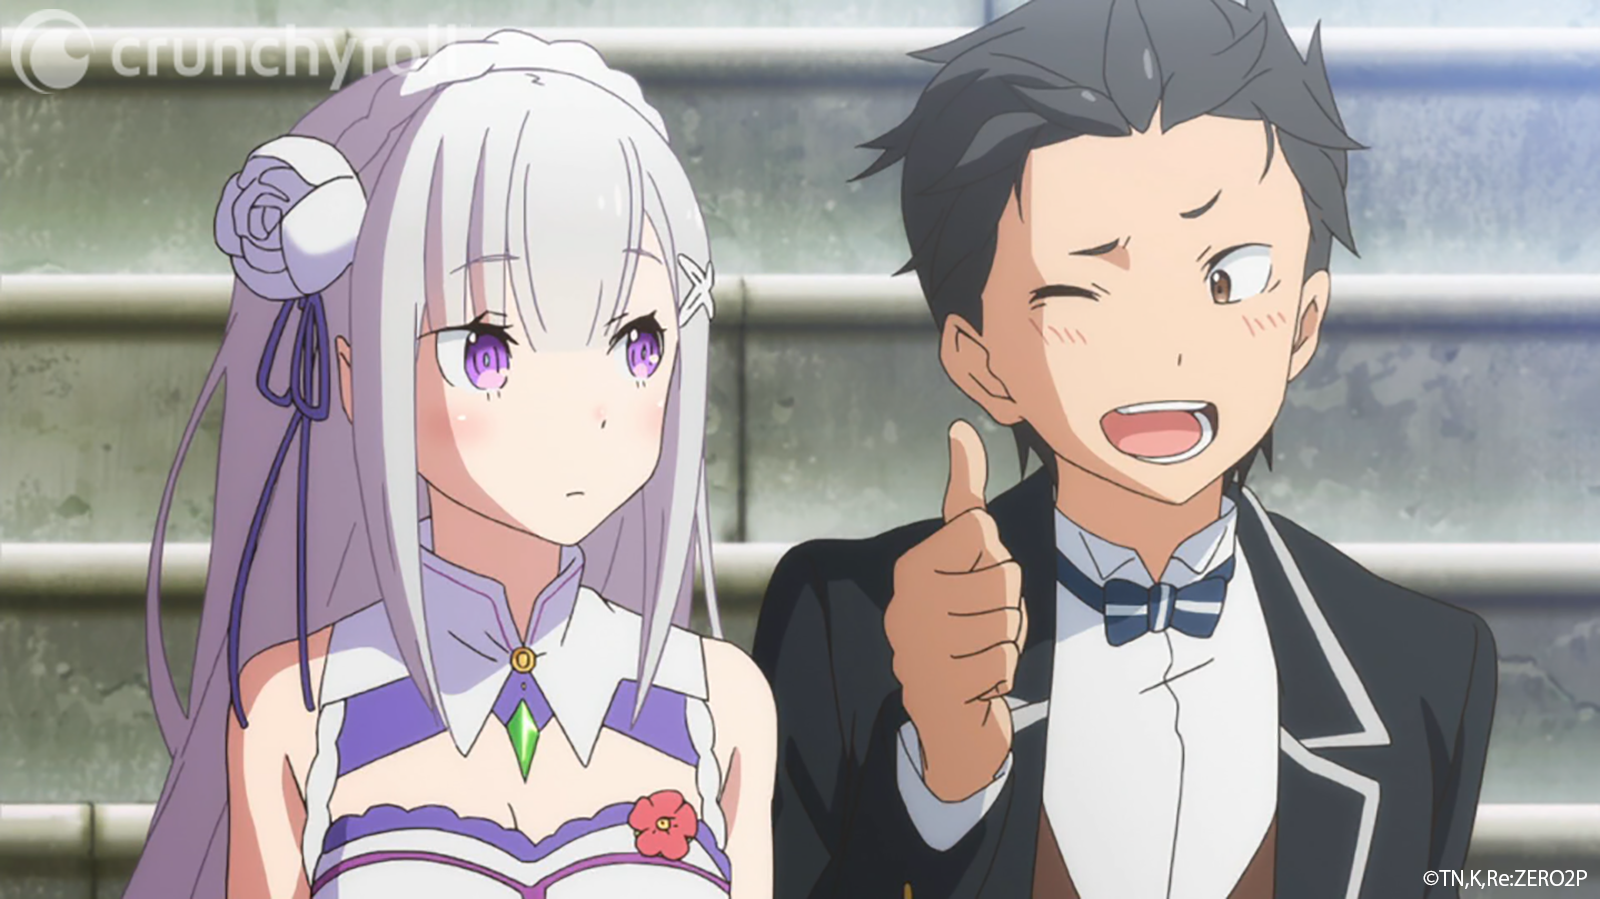 Natsuki Subaru flashes Emilia a wink and a thumb's up in a scene from the Re:ZERO -Starting Life in Another World- TV anime.